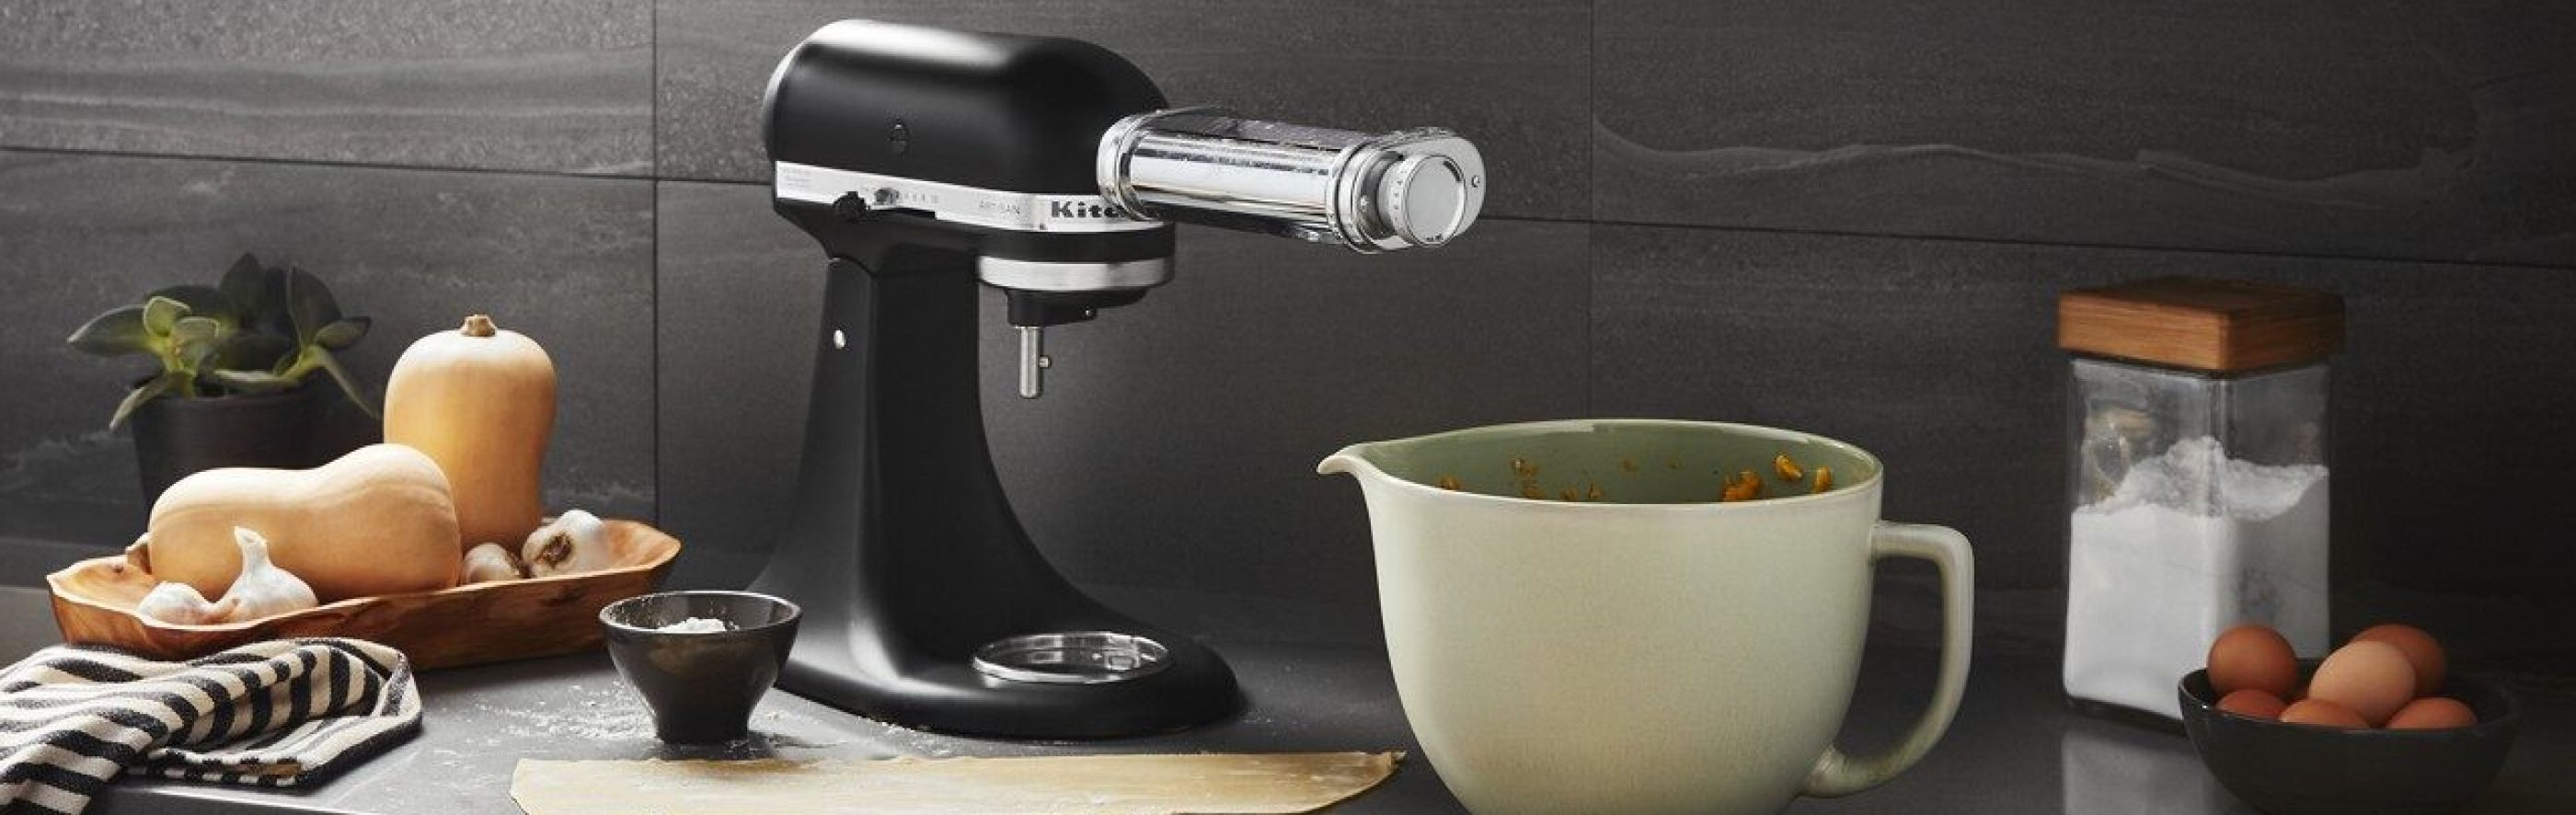 Black stand mixer with pasta attachment next to sage green mixing bowl and butternut squash